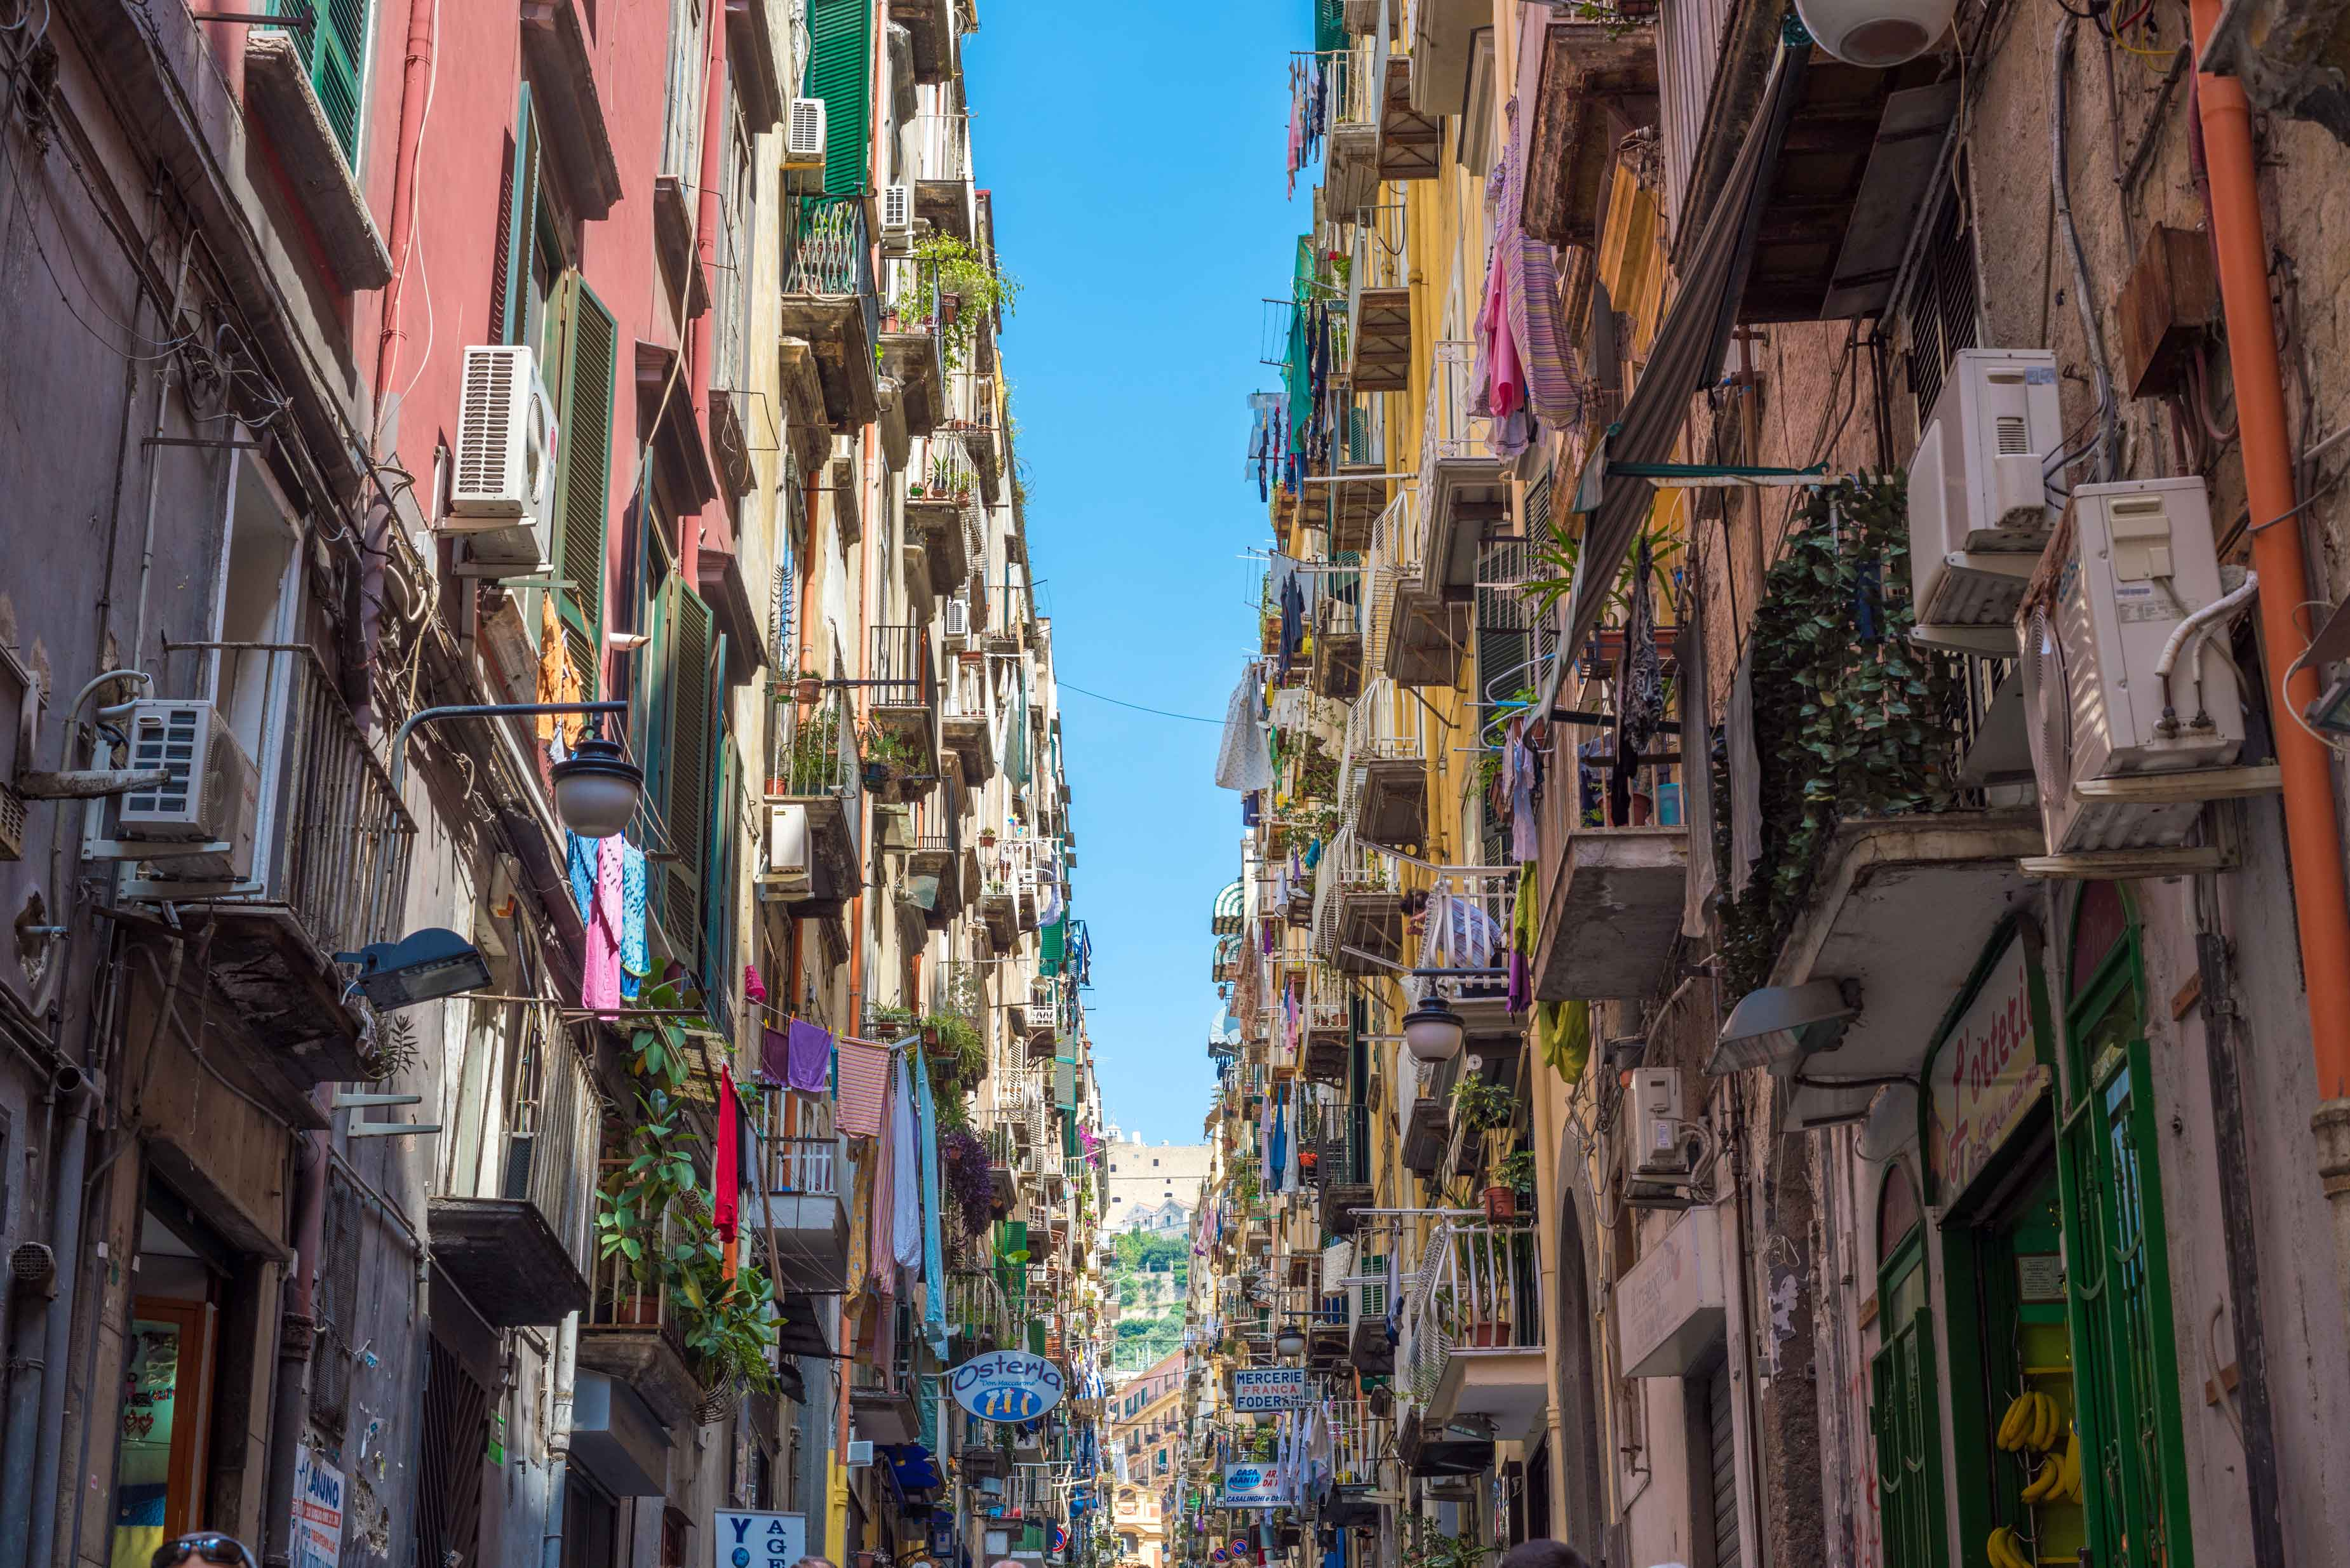 Canva---Colorful-streets-of-Naples,-Italy